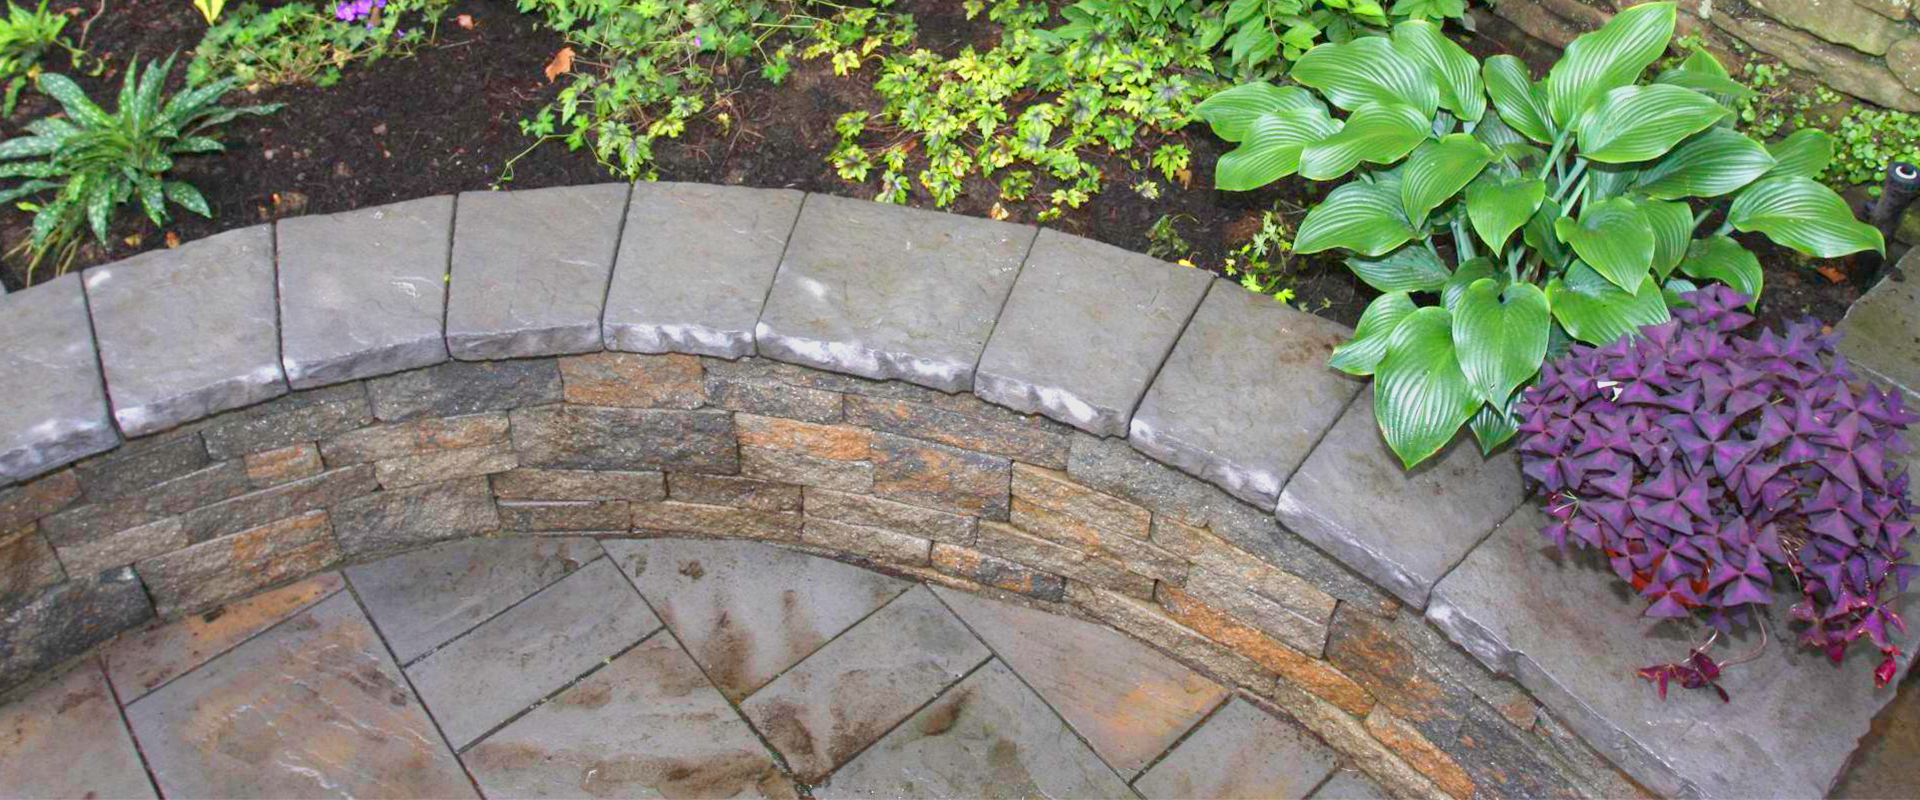 Pittsburgh Landscaping for Over 91 Years!